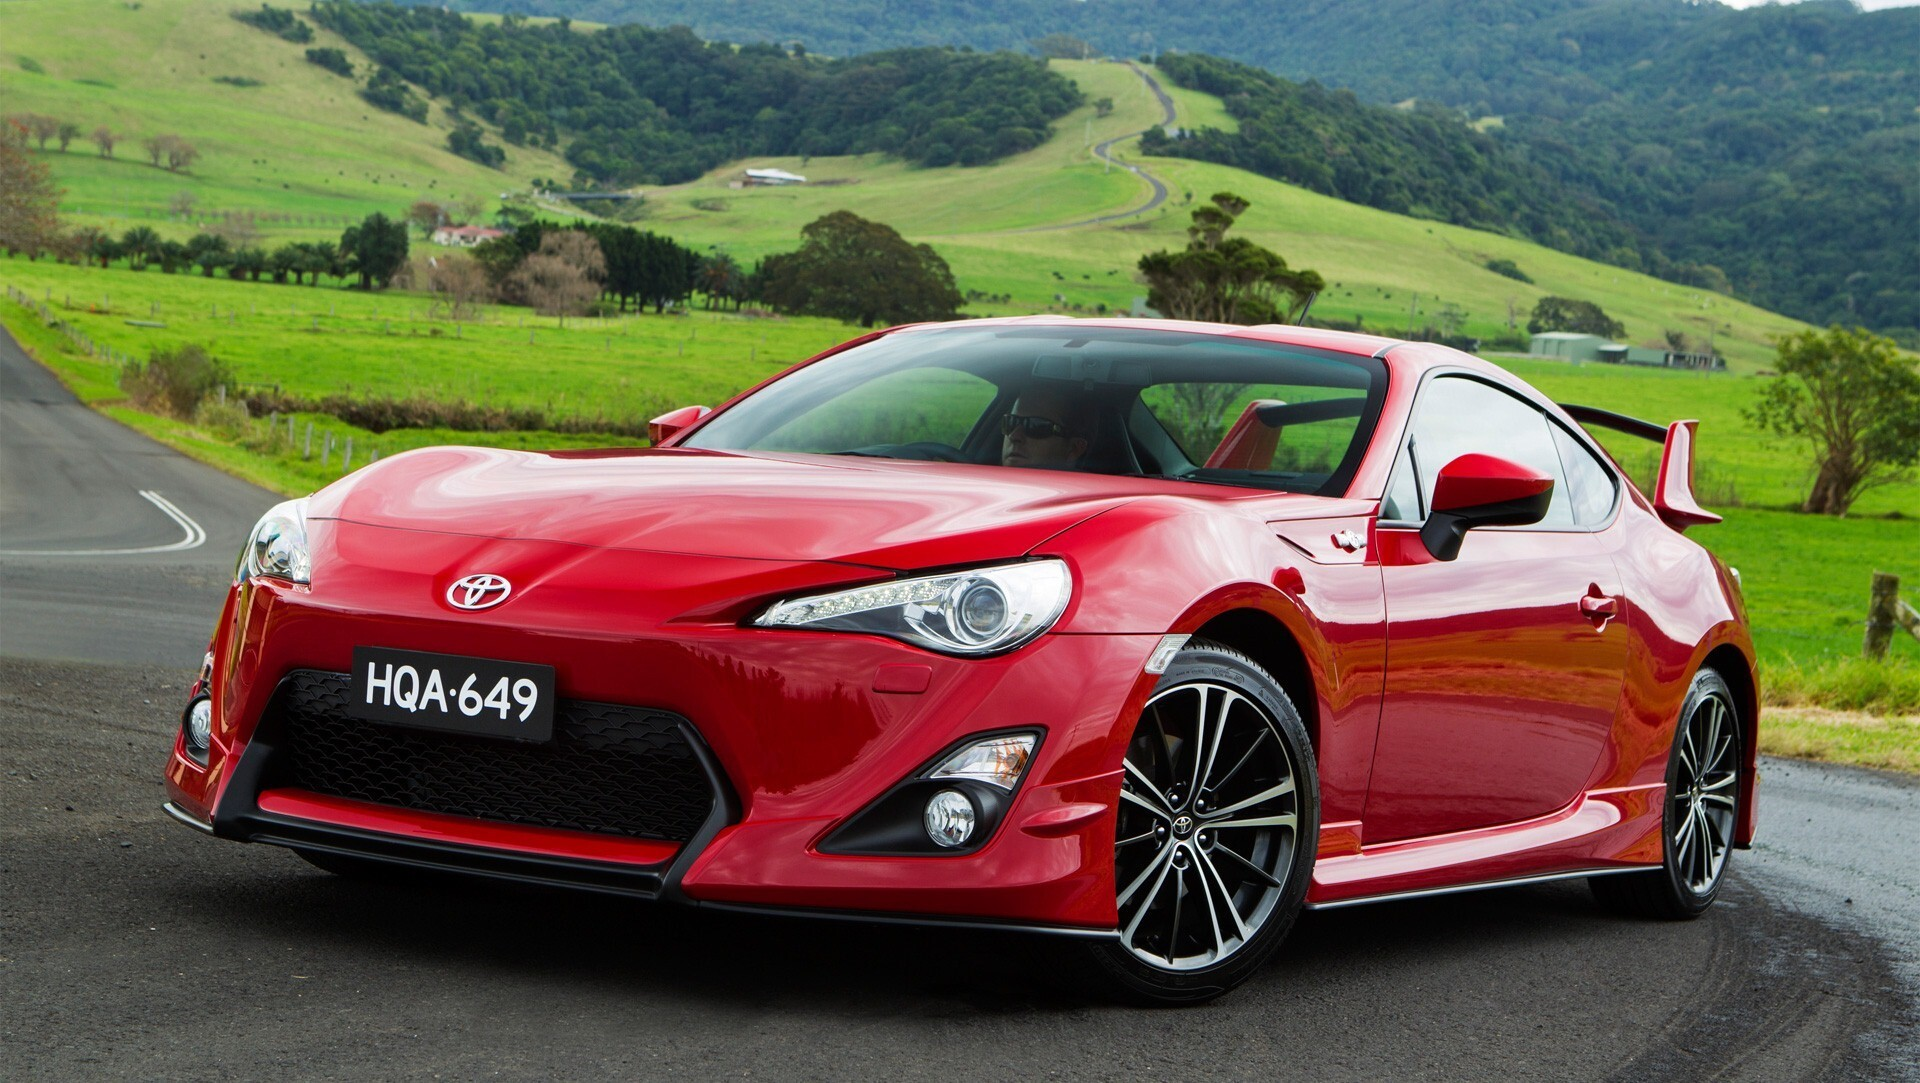 Red Toyota Sport Car Wallpaper Hd Wallpapers